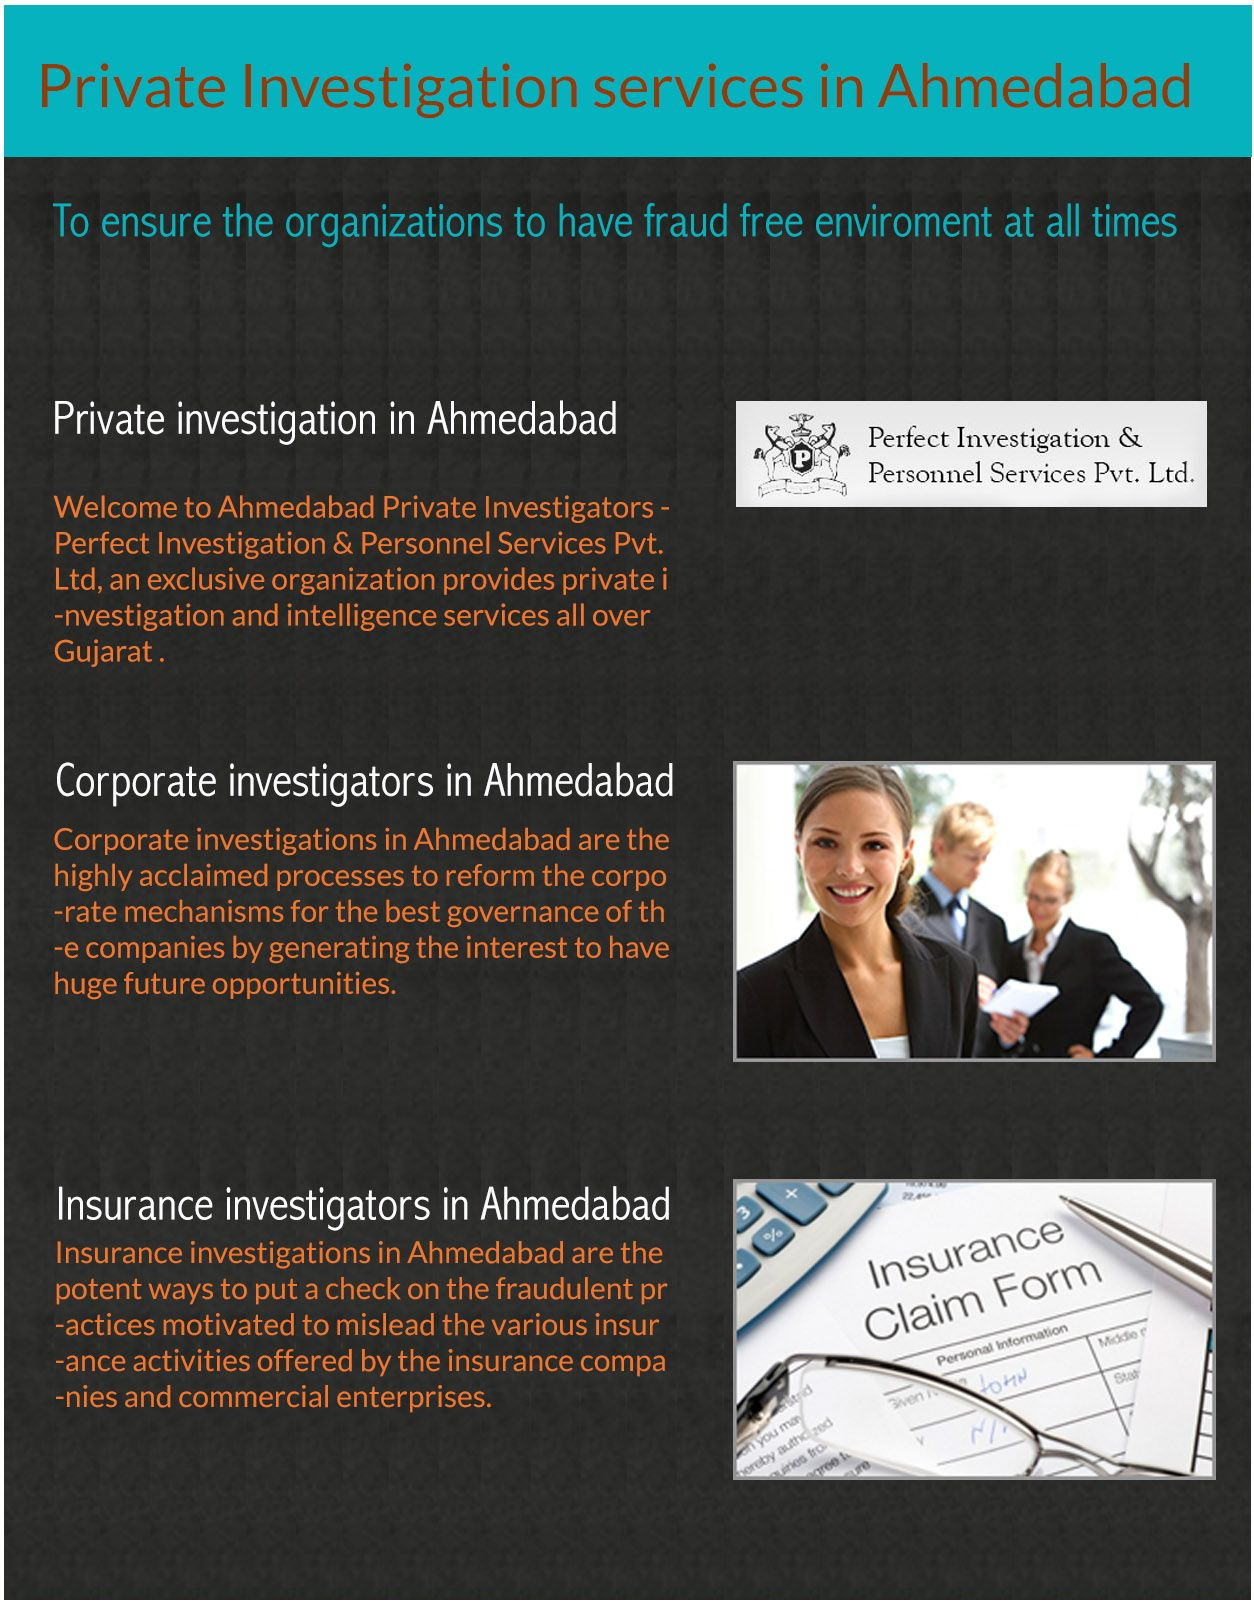 Private Investigator In Ahmedabad Insurance And Corporate